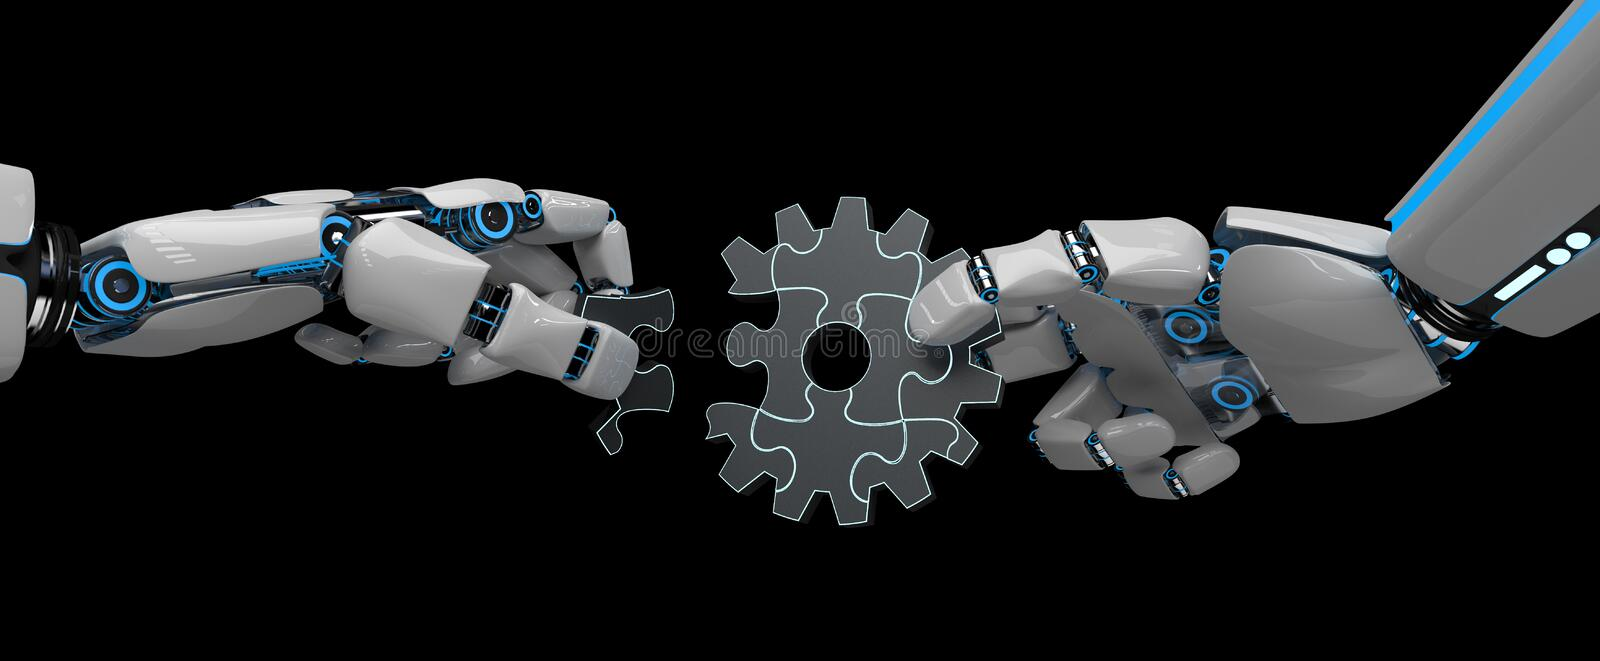 Humanoid Robot Gear Wheel Puzzle. Hands of the humanoid robot with gear wheel puzzle stock illustration